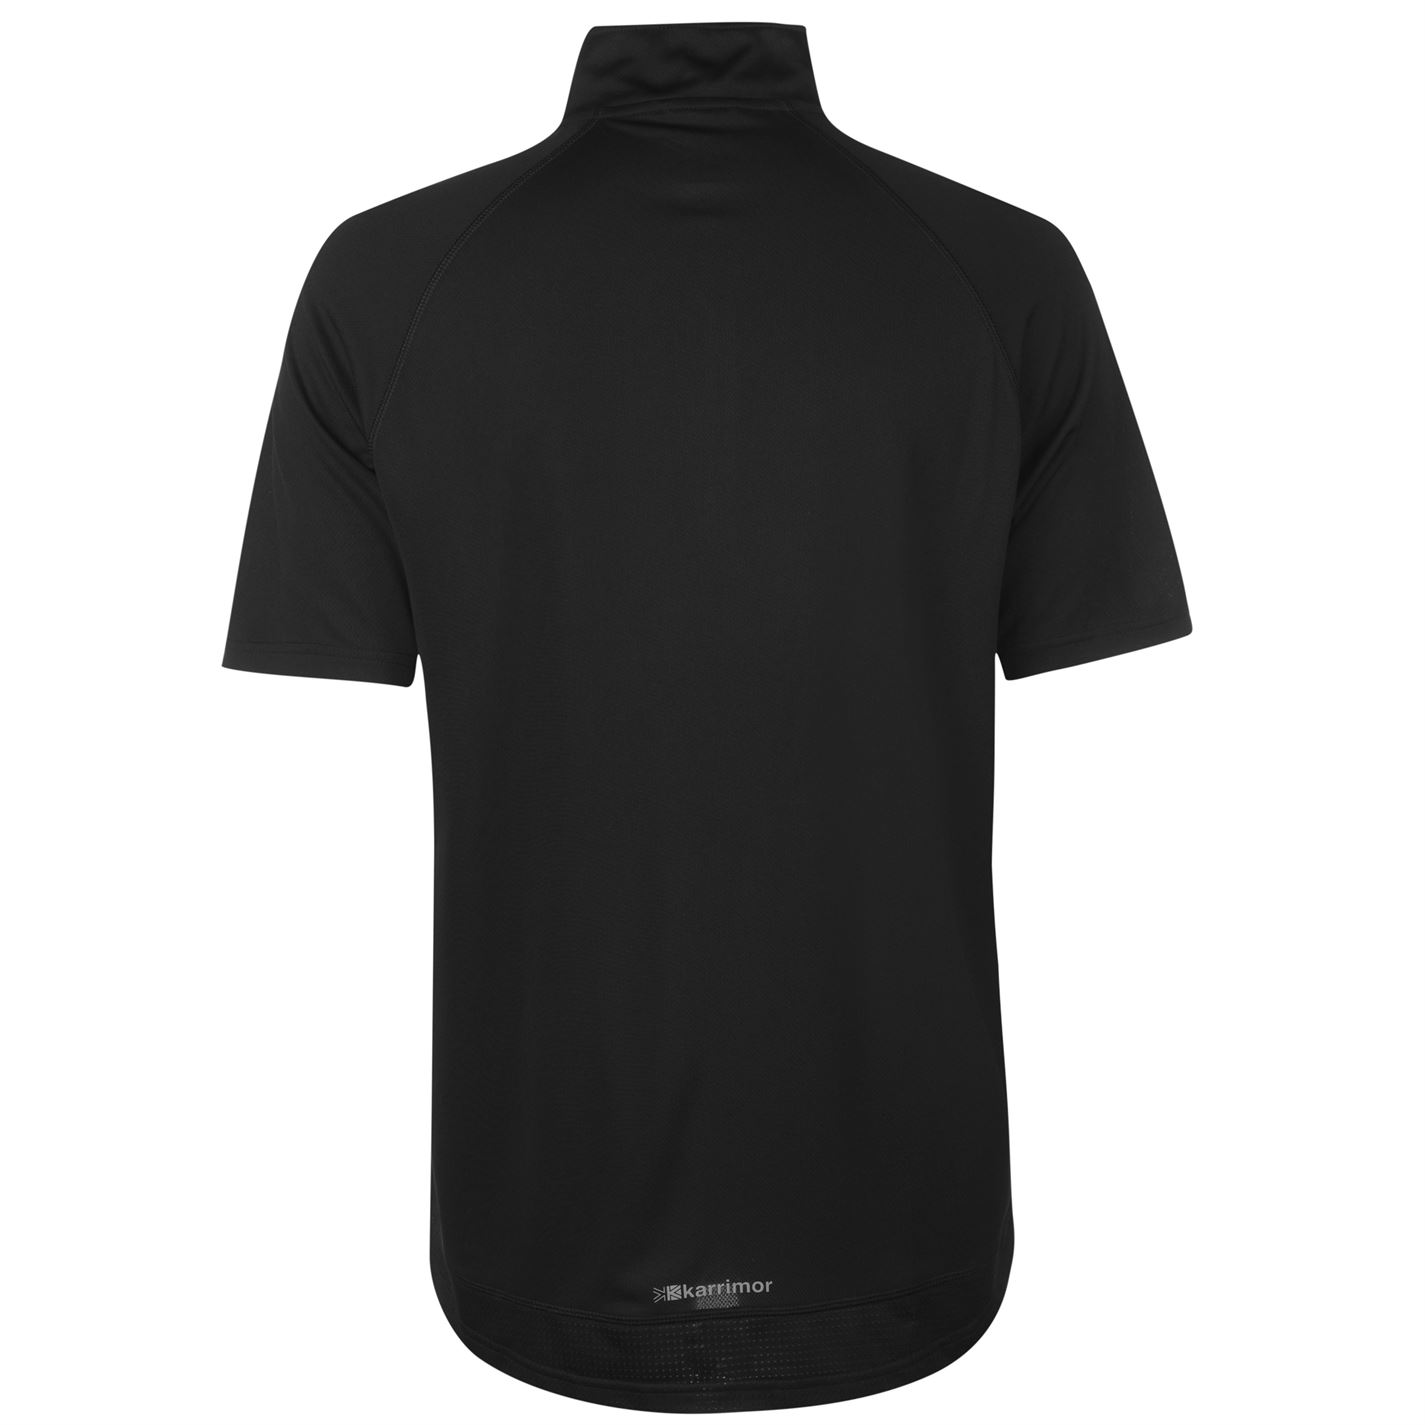 Karrimor Mens Zipped Short Sleeved T-Shirt Black